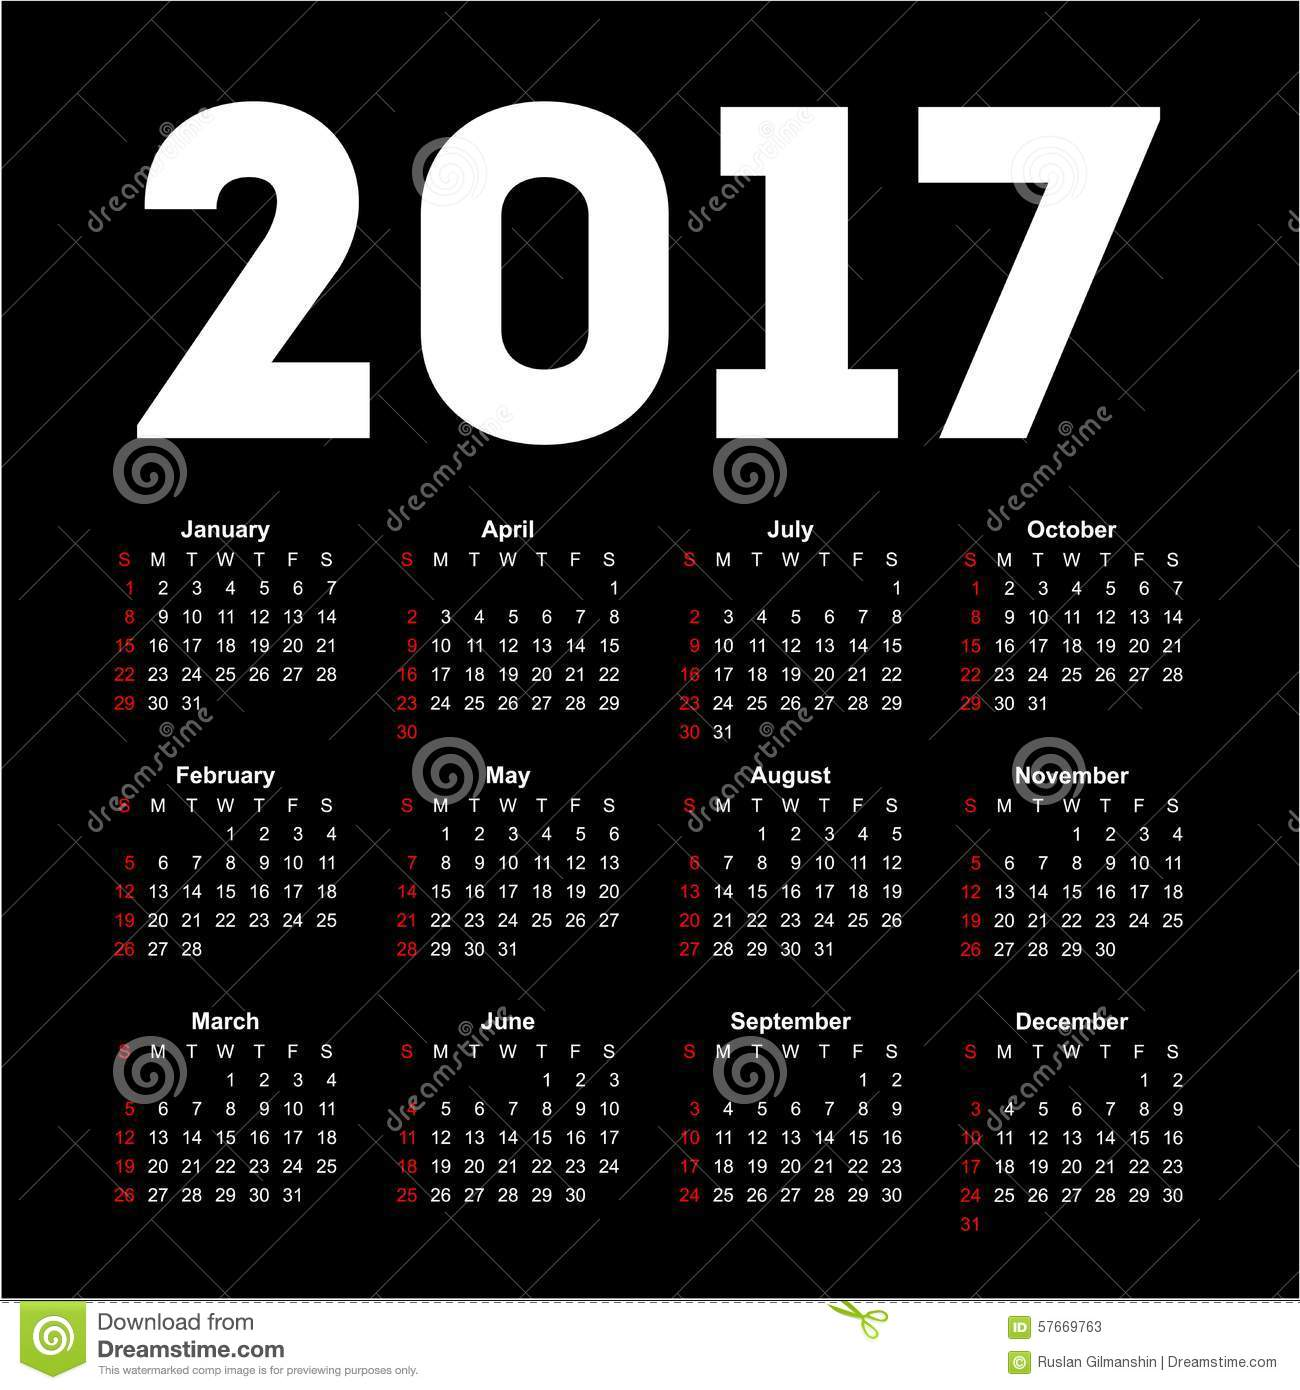 More similar stock images of ` Calendar for 2017 on black background ...